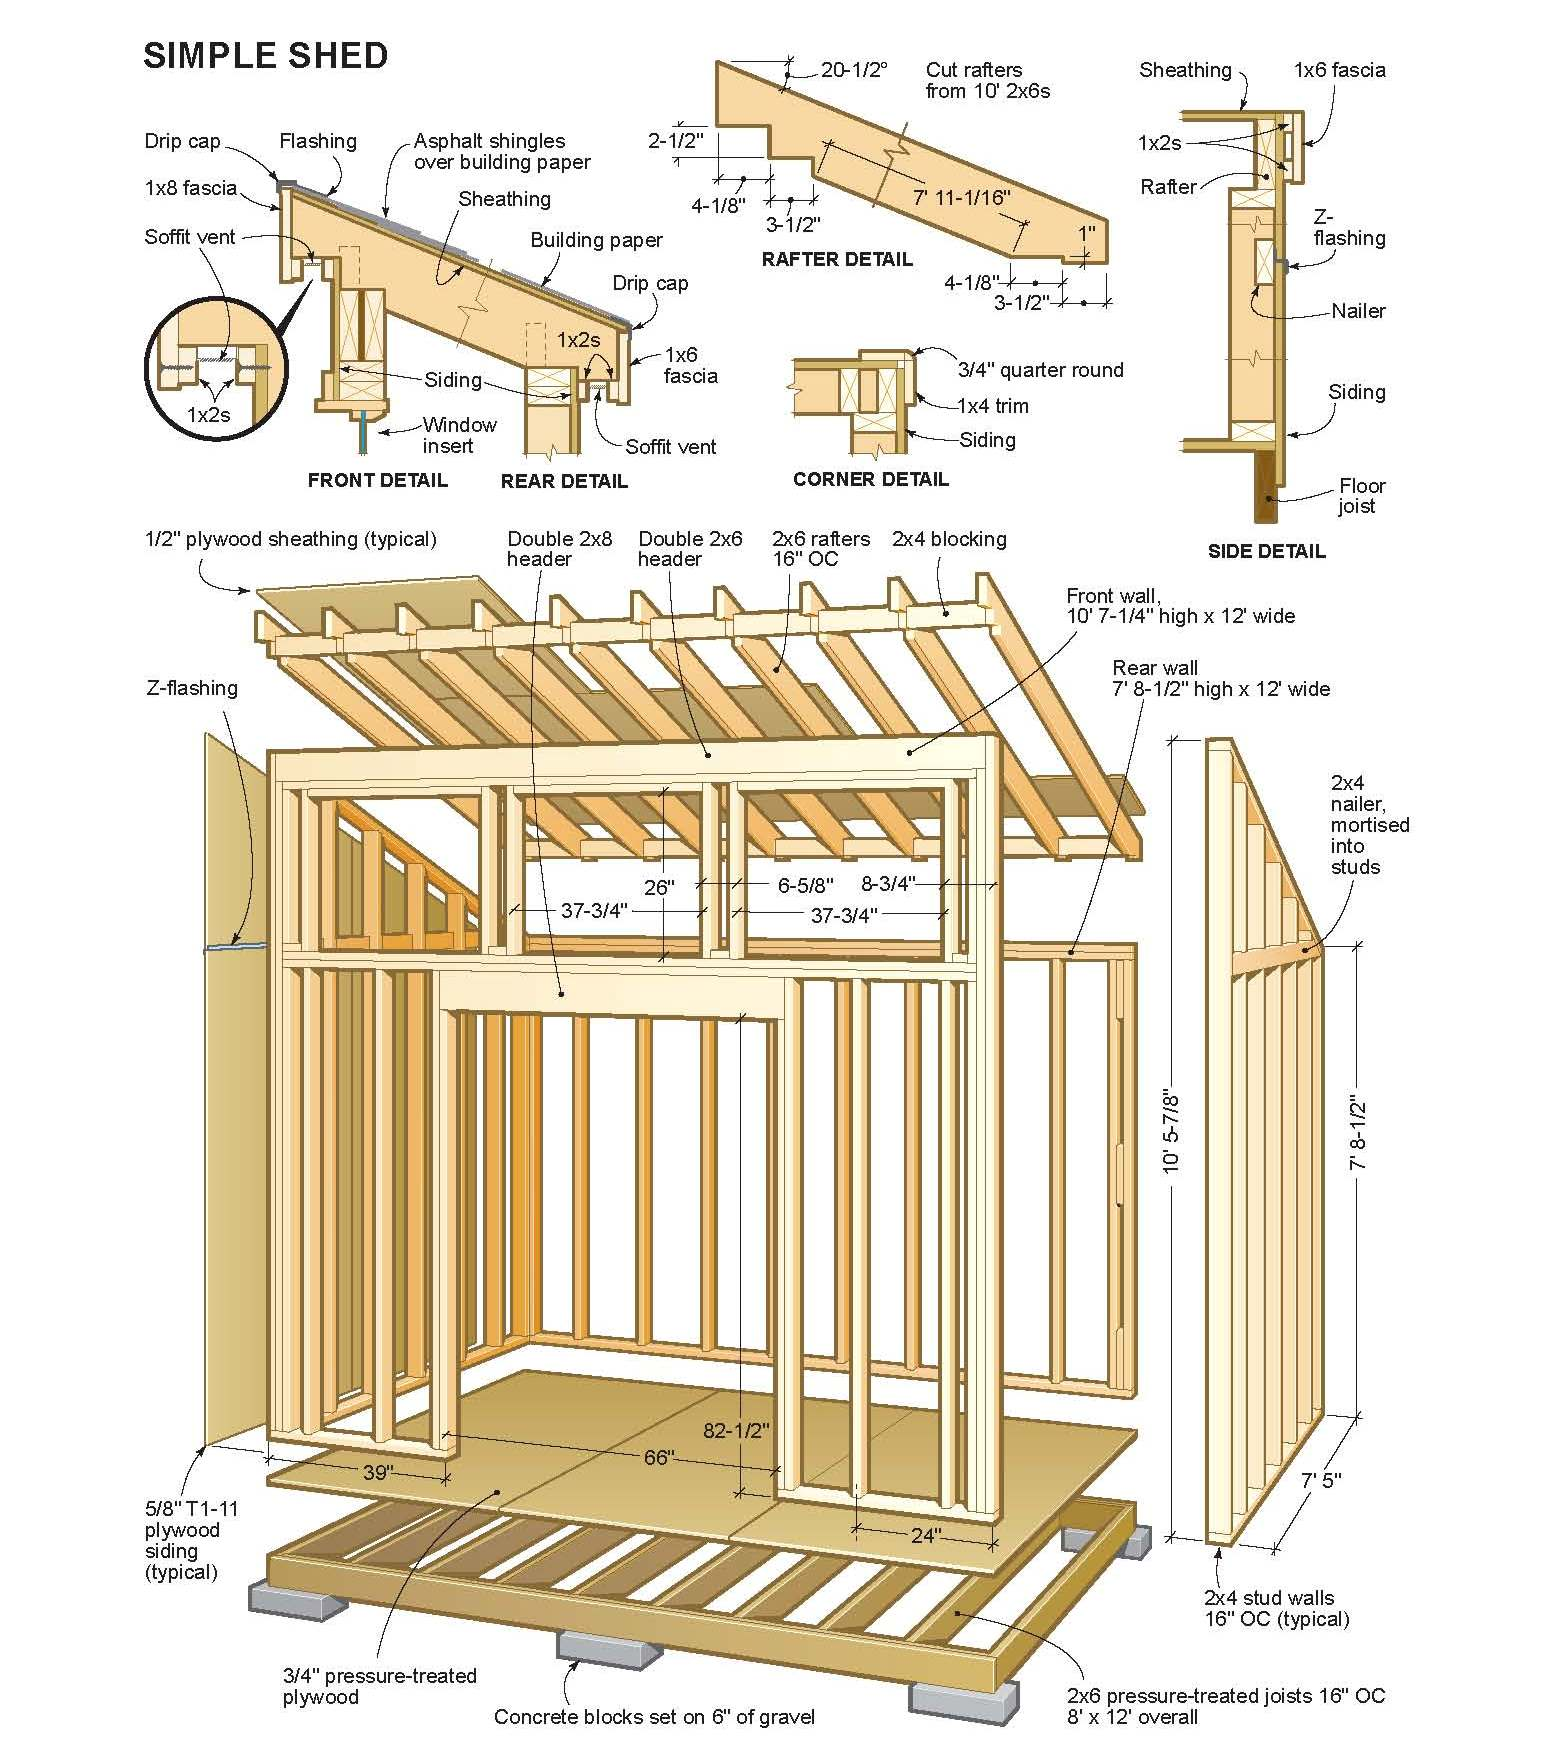 Shed Blueprints Shed Blueprints Page 4